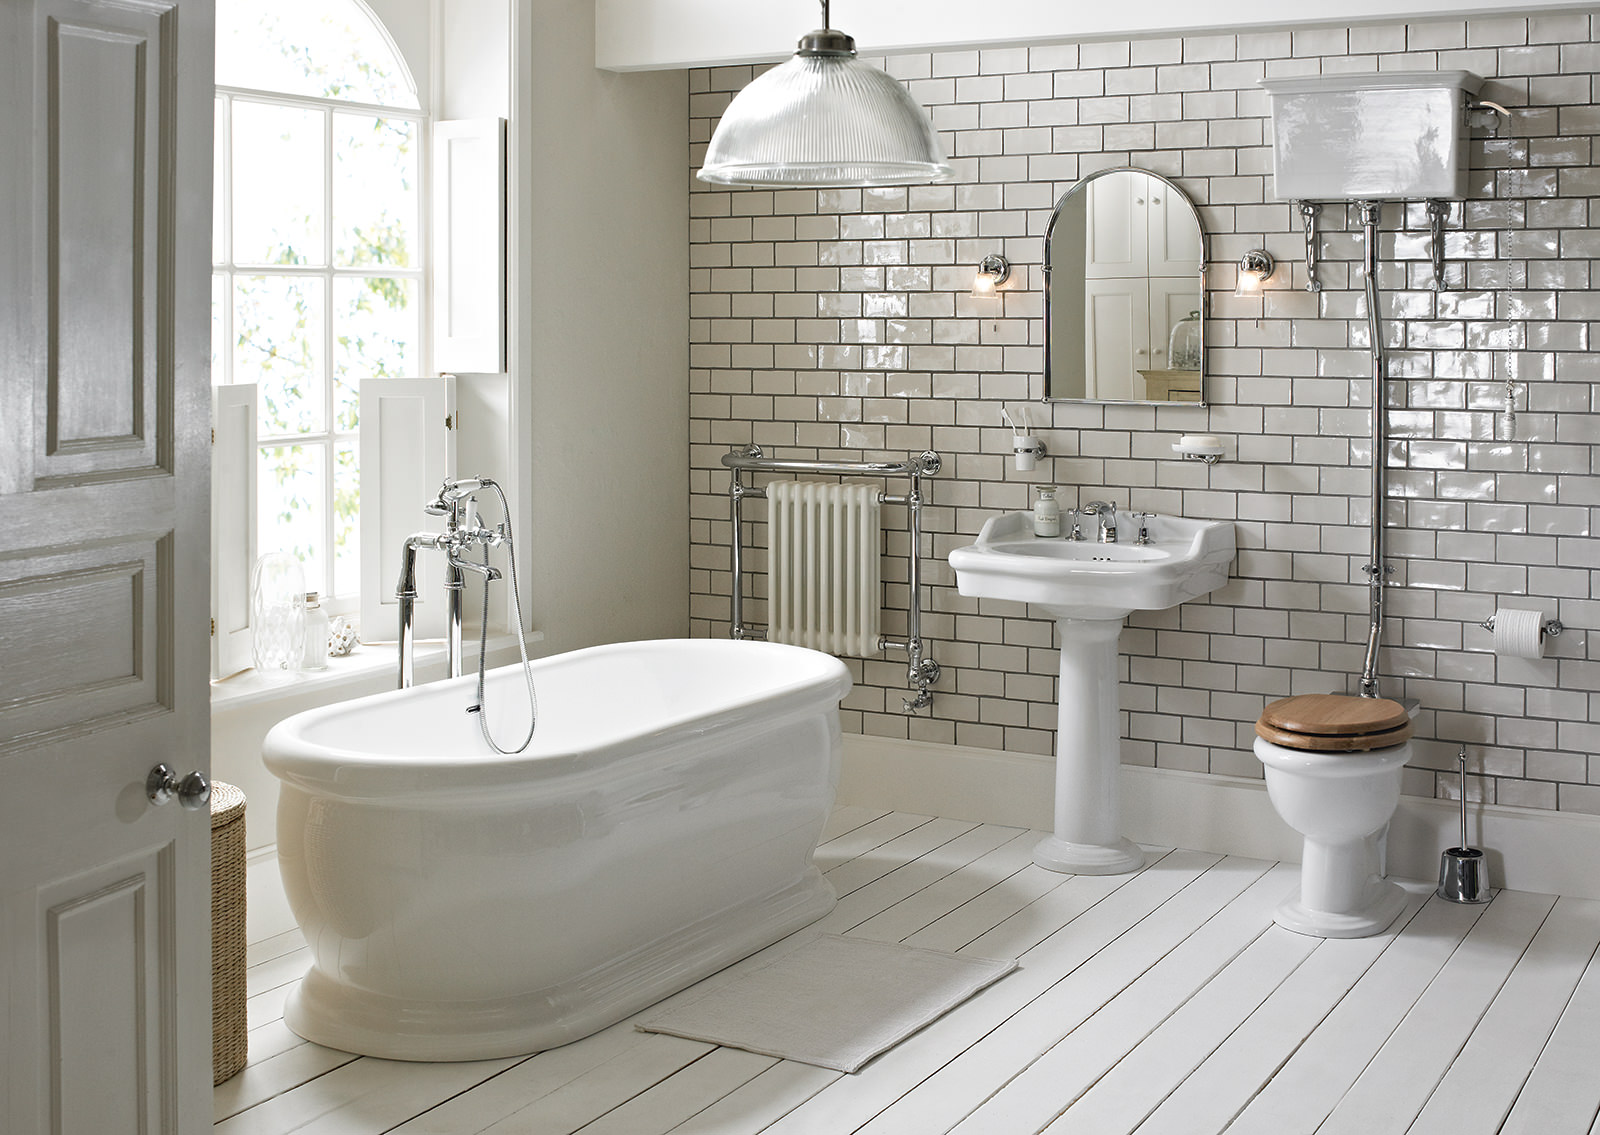 Heritage victoria high level wc and cistern with flush pack for Radiateur pour salle de bain